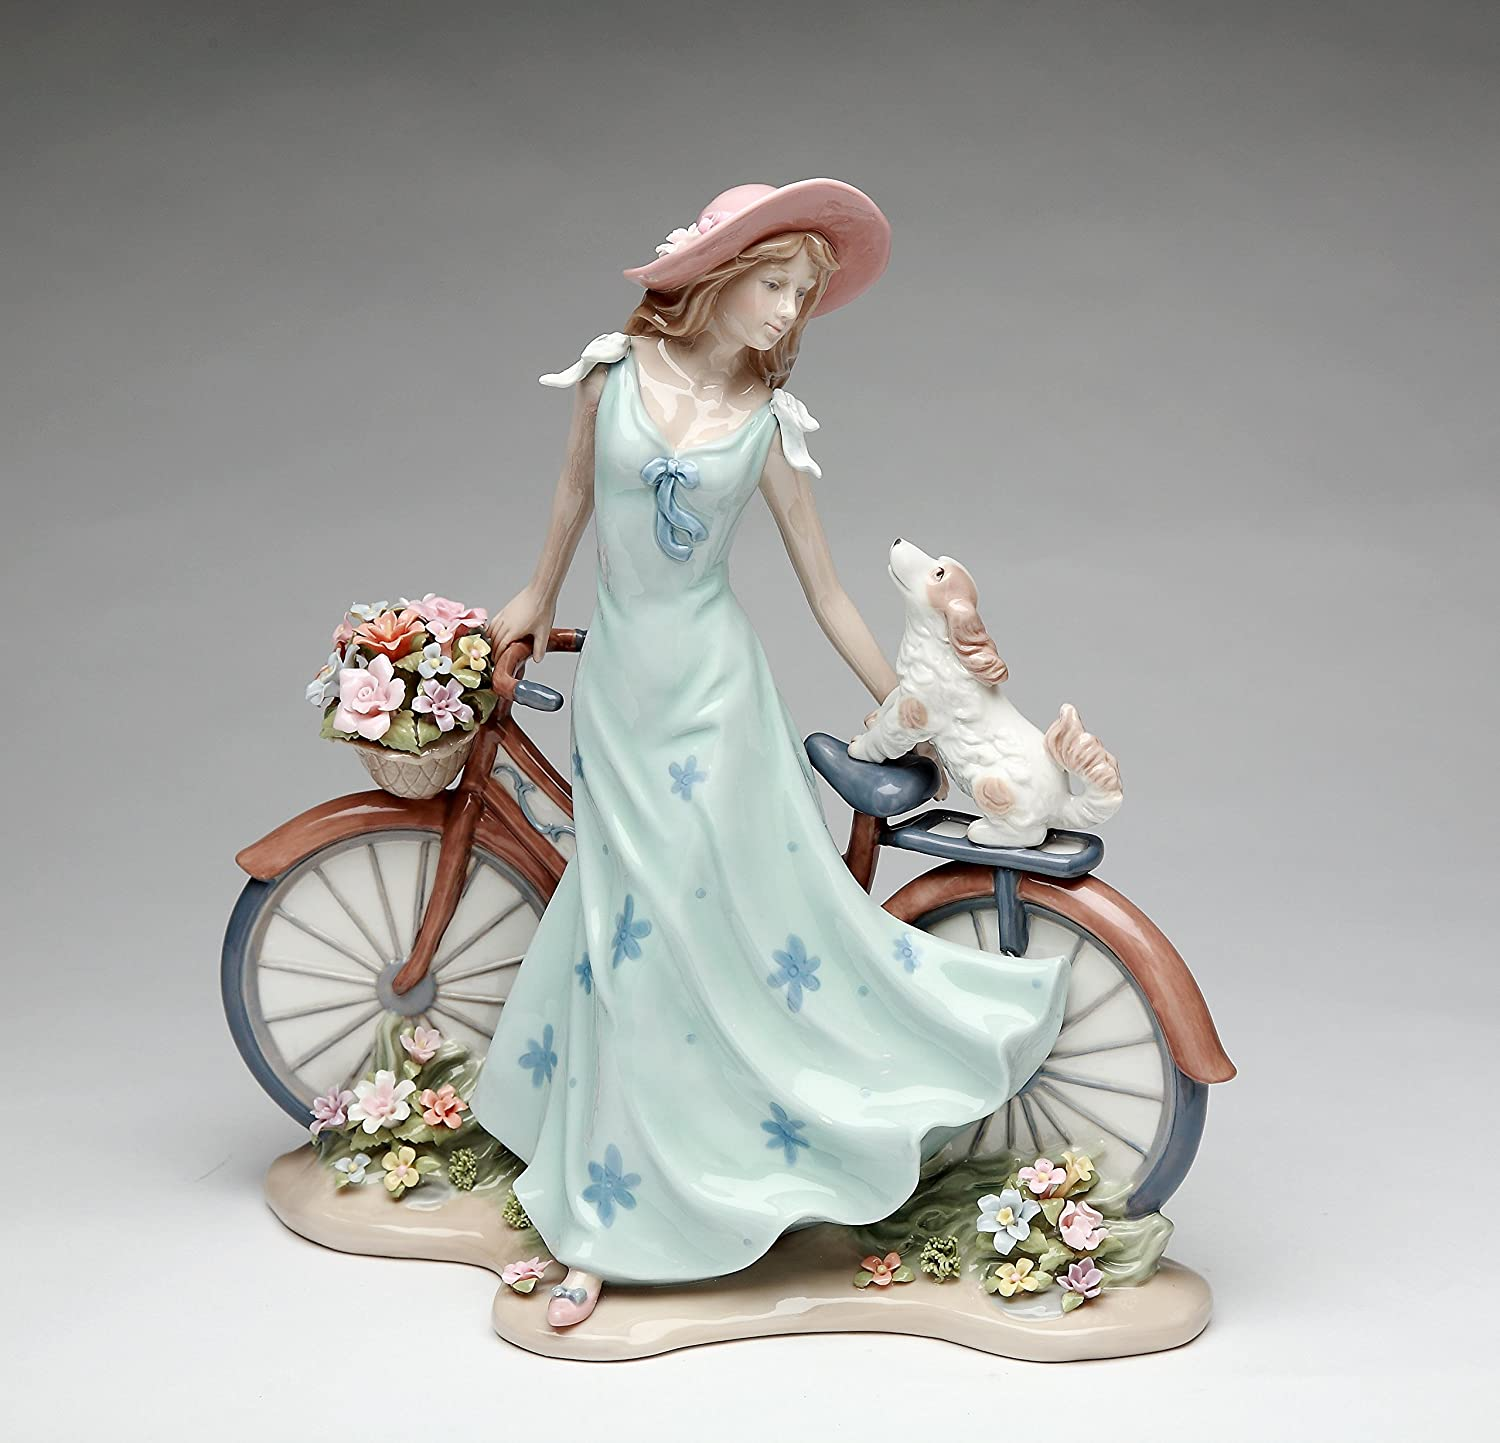 Amazon Com Cosmos Gifts 10414 Fine Elegant Porcelain Lady Riding Bike With My Best Friend Dog Puppy Porcelain Figurine 10 5 8 H Home Kitchen